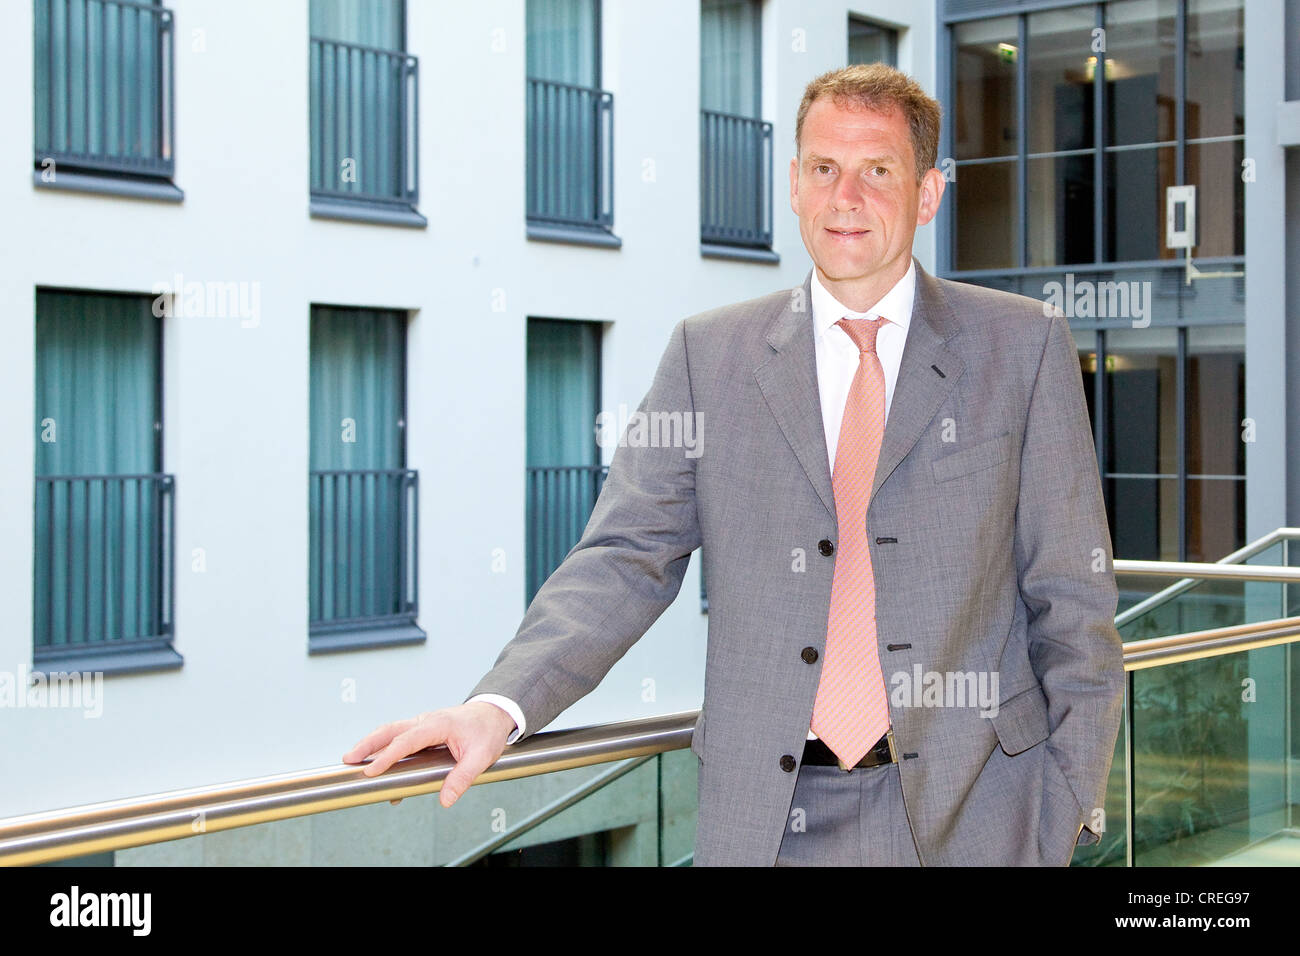 Operations Manager Stockfotos & Operations Manager Bilder - Alamy